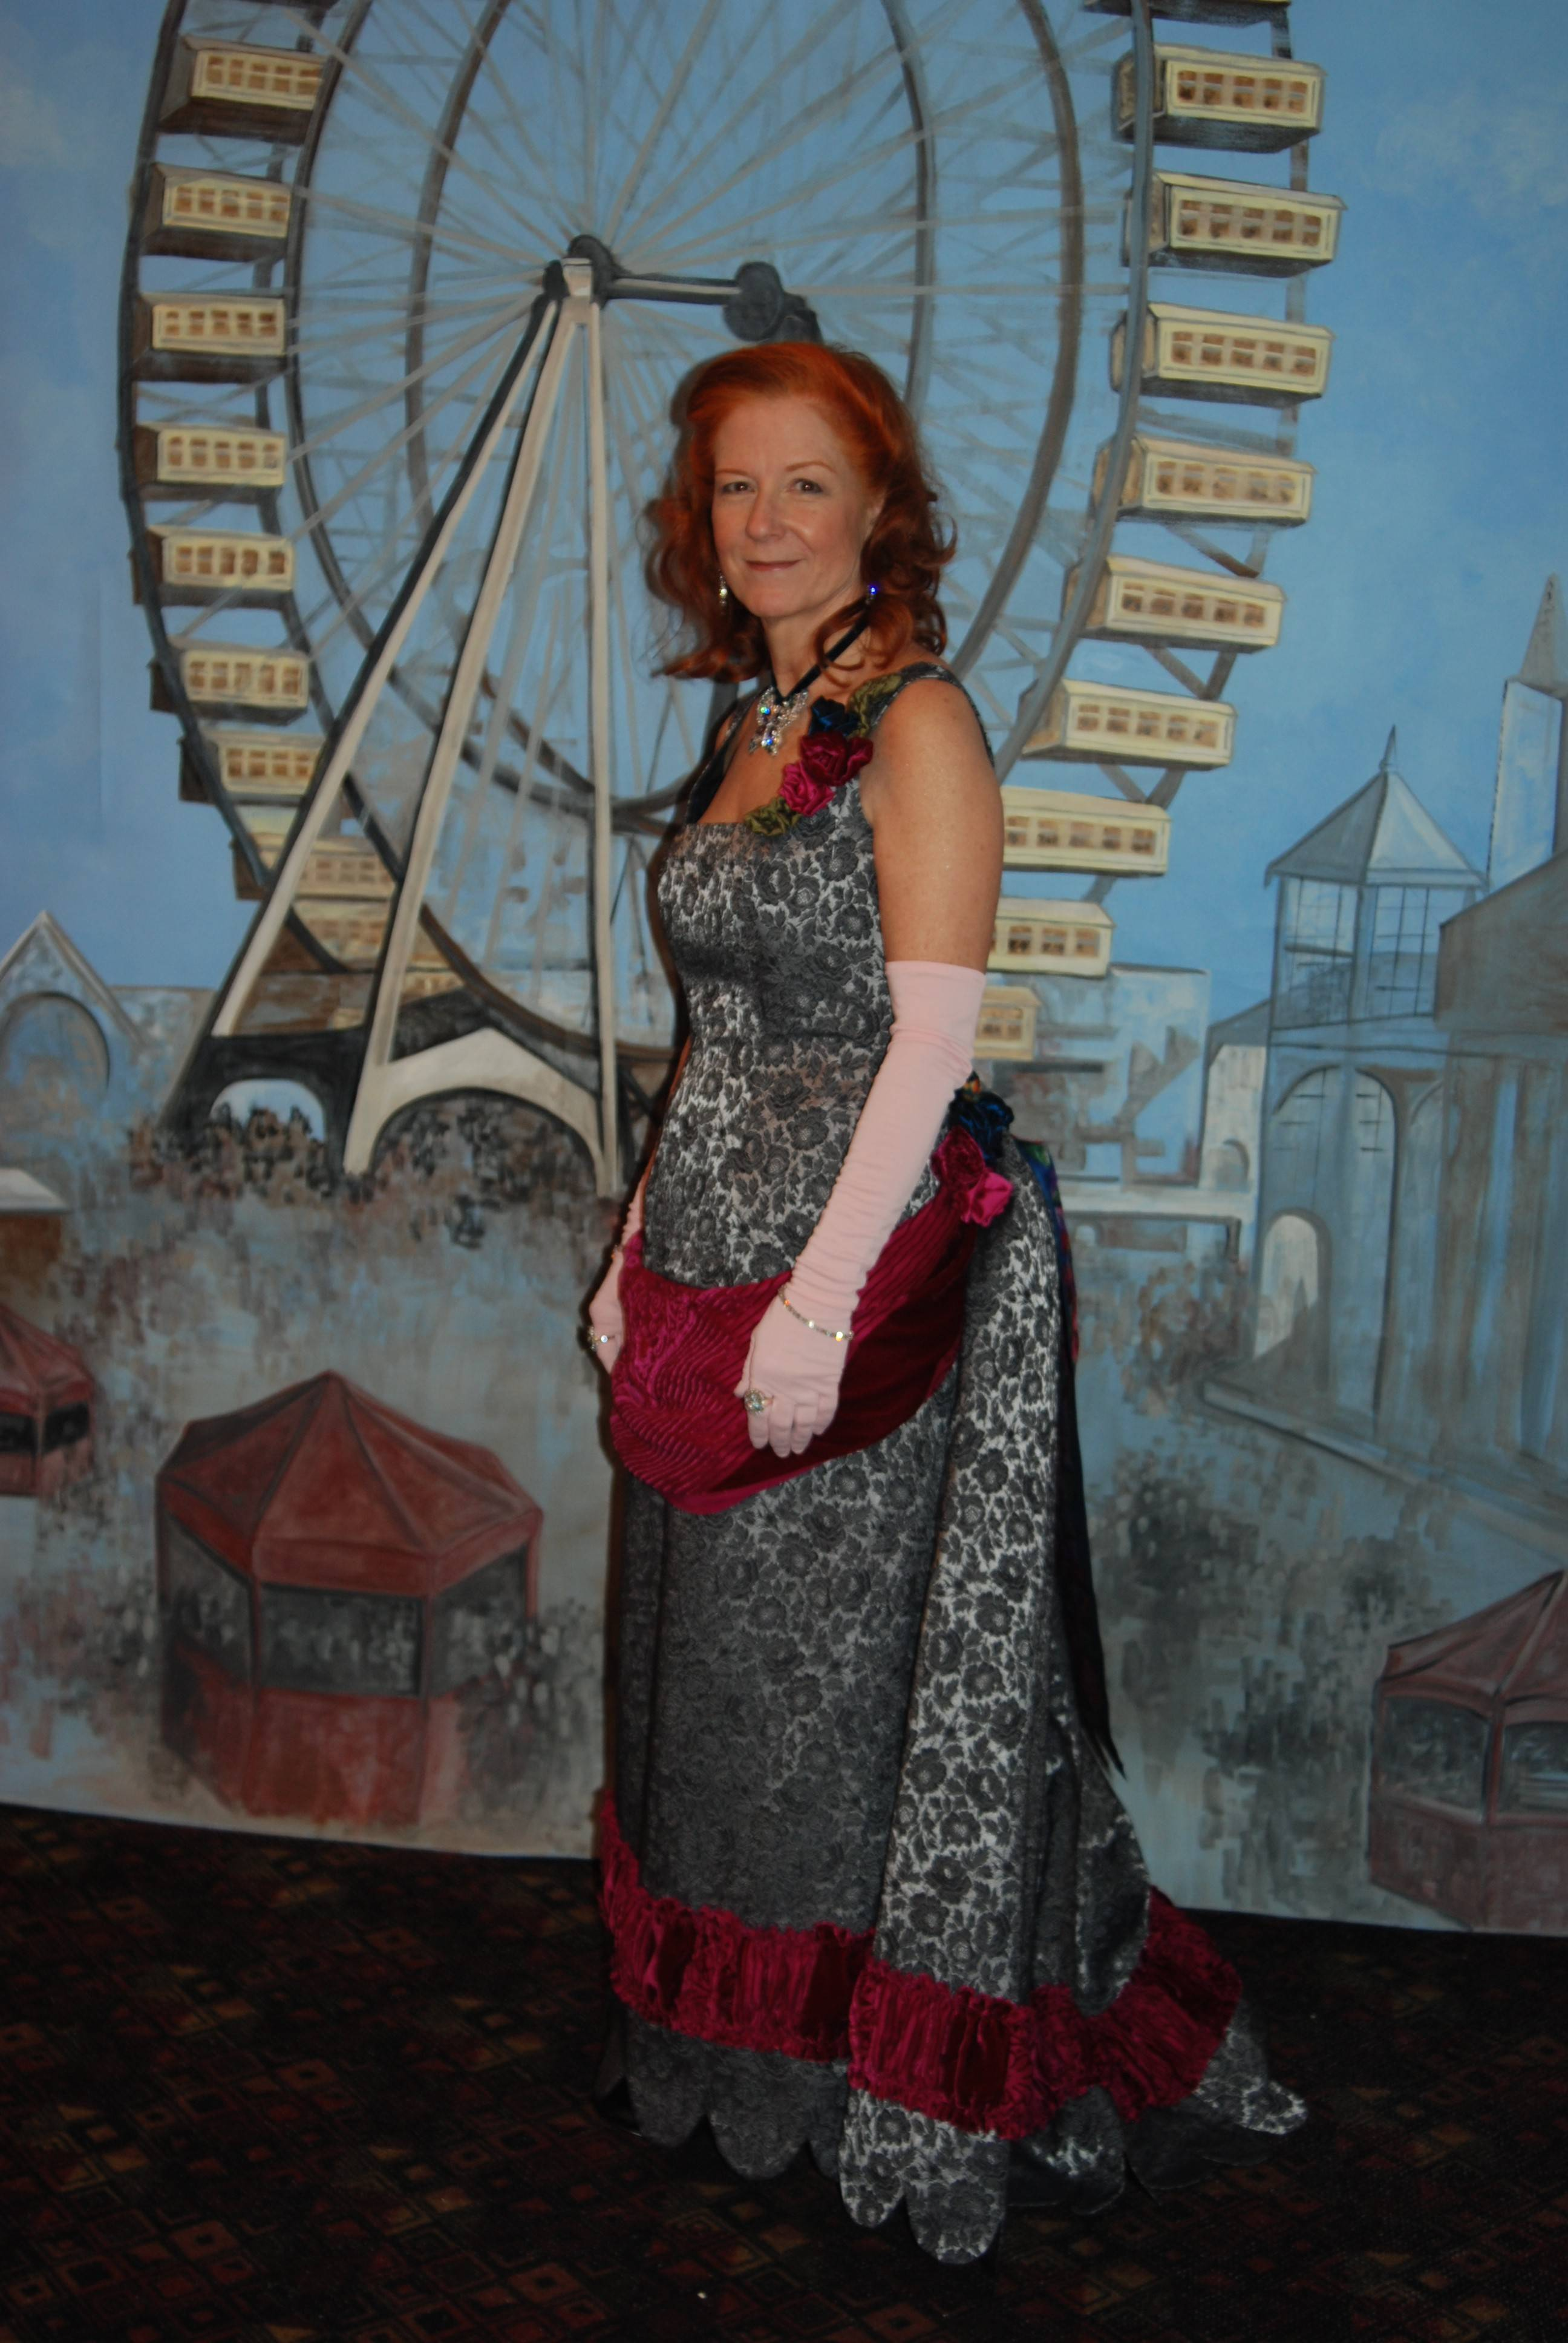 Paula Zoern Loga of Mount Prospect poses in front of the Ferris wheel backdrop, wearing the costume she created for the evening. The backdrop was hand-painted by Donna Koda of Elegant Accents, a Mount Prospect-based trompe l'oeil painting firm.